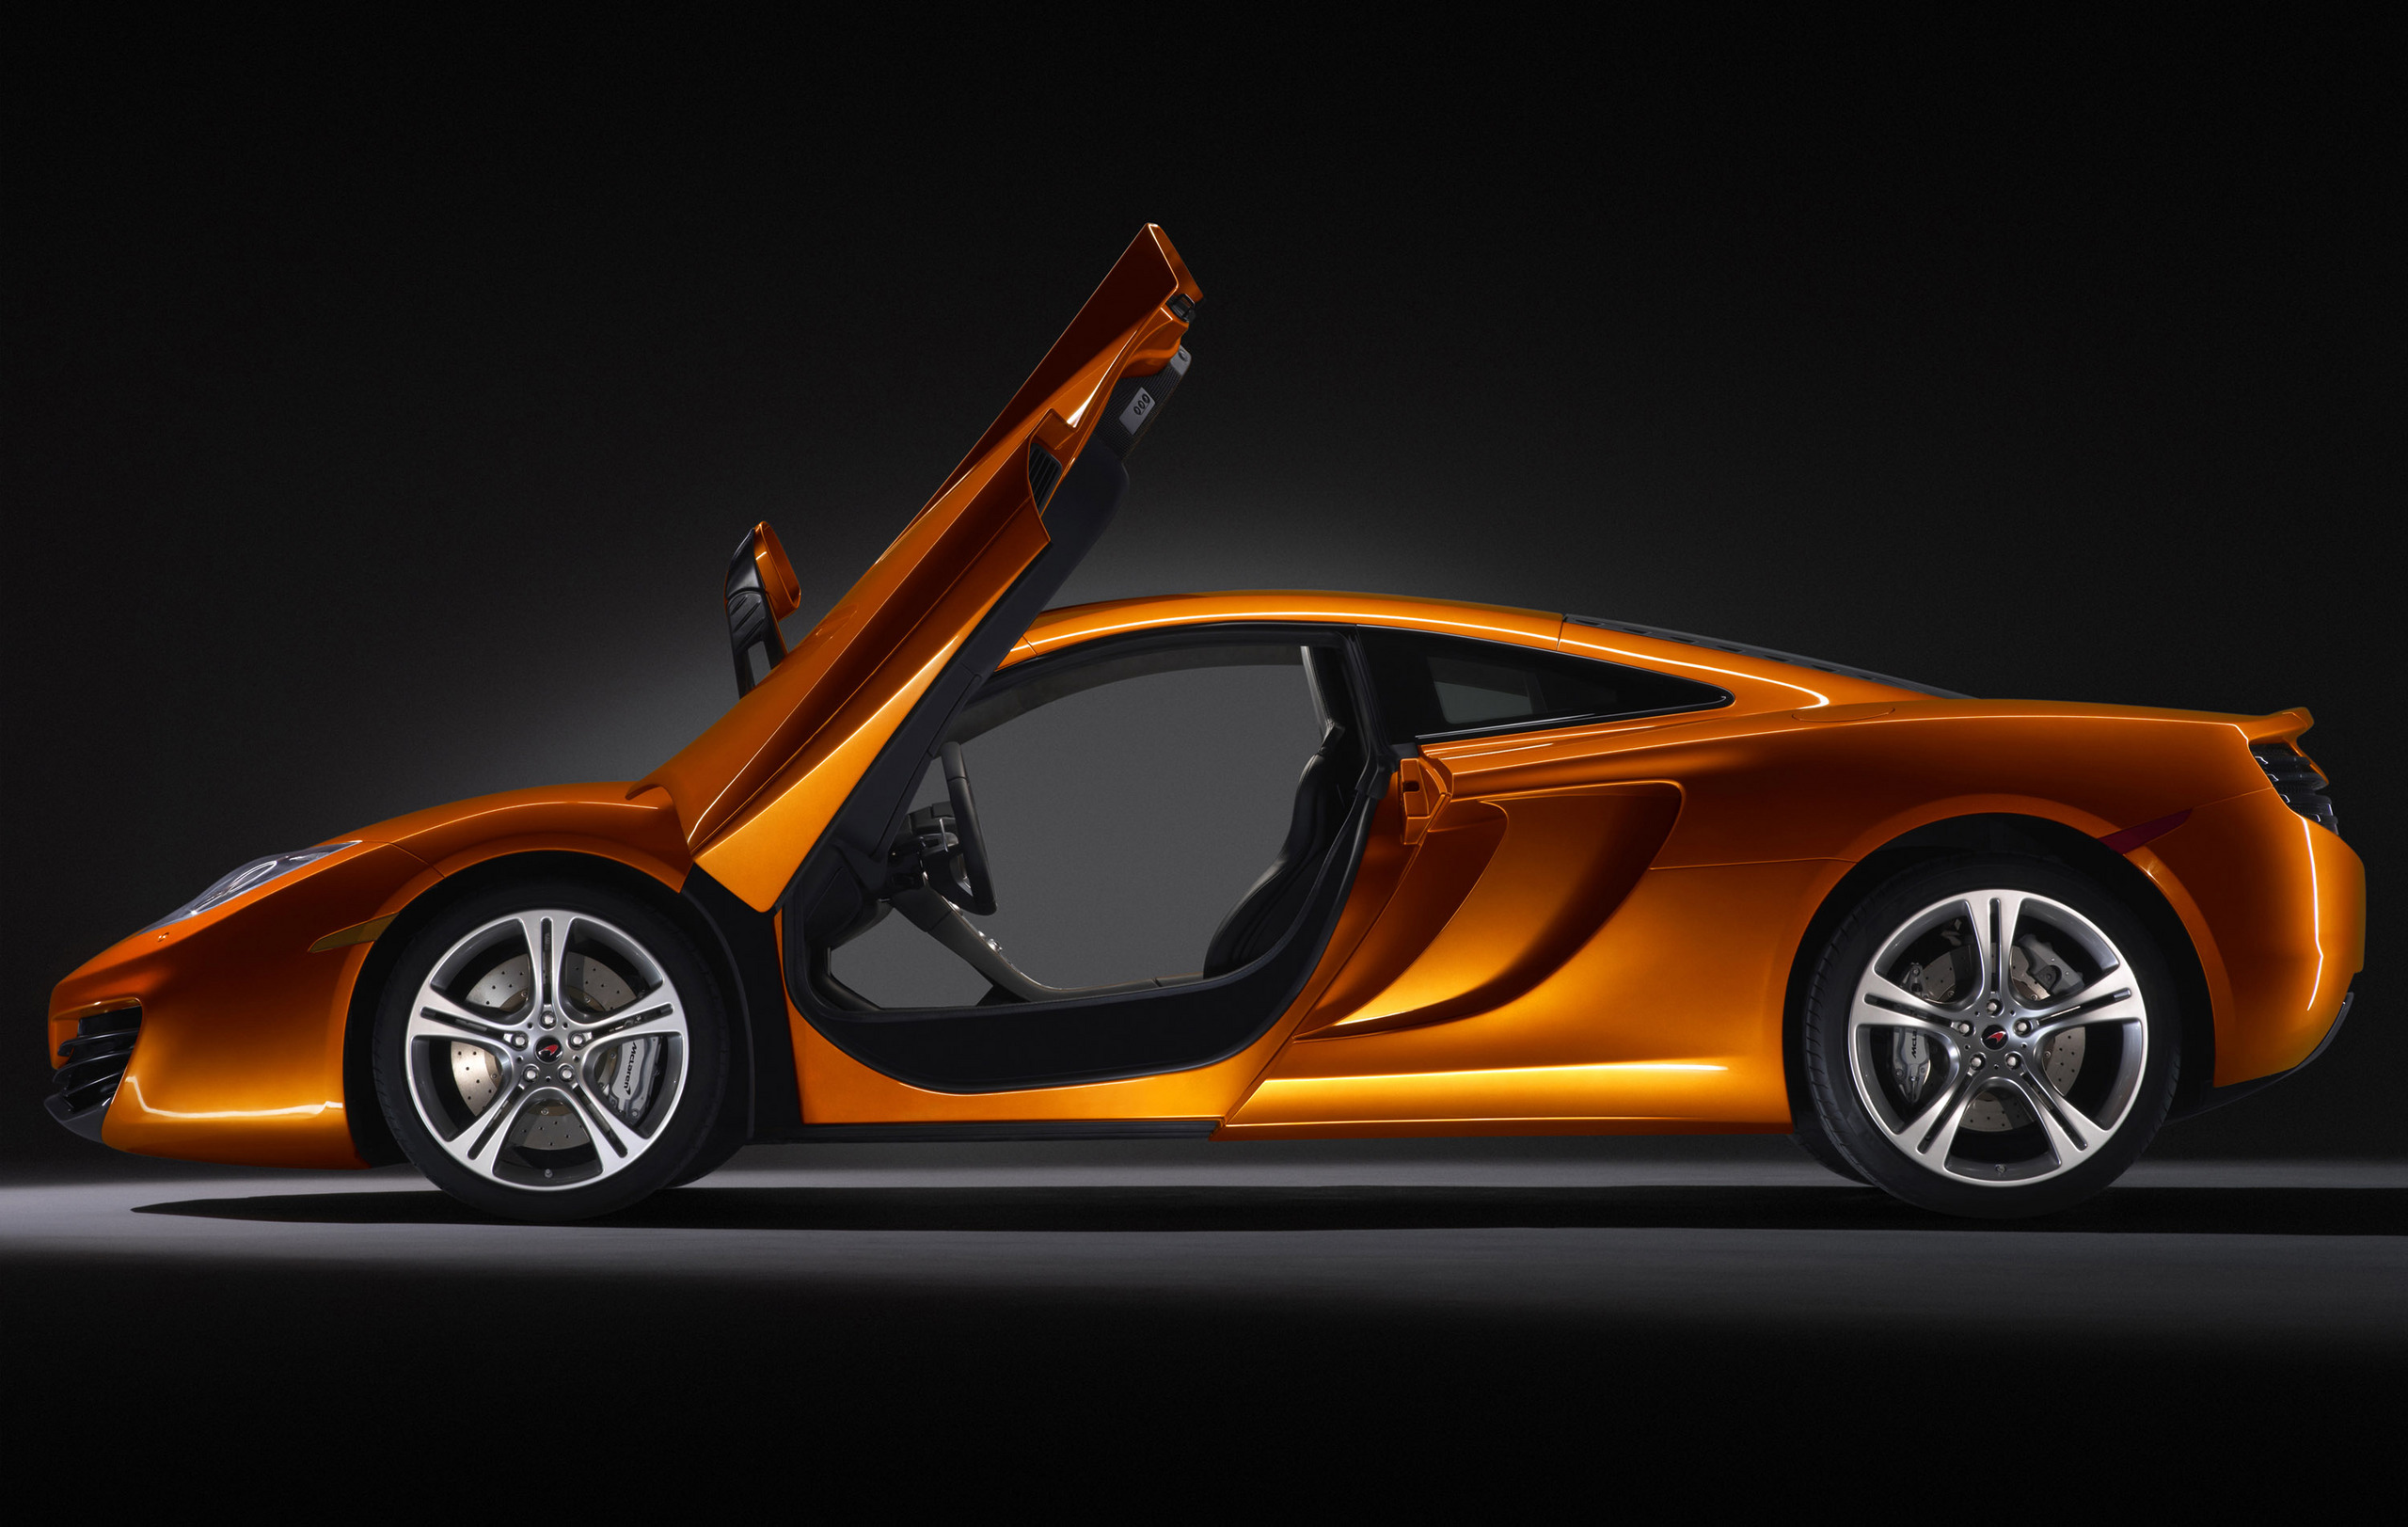 Exotic Cars Images Mclaren Mp4 12c Hd Wallpaper And